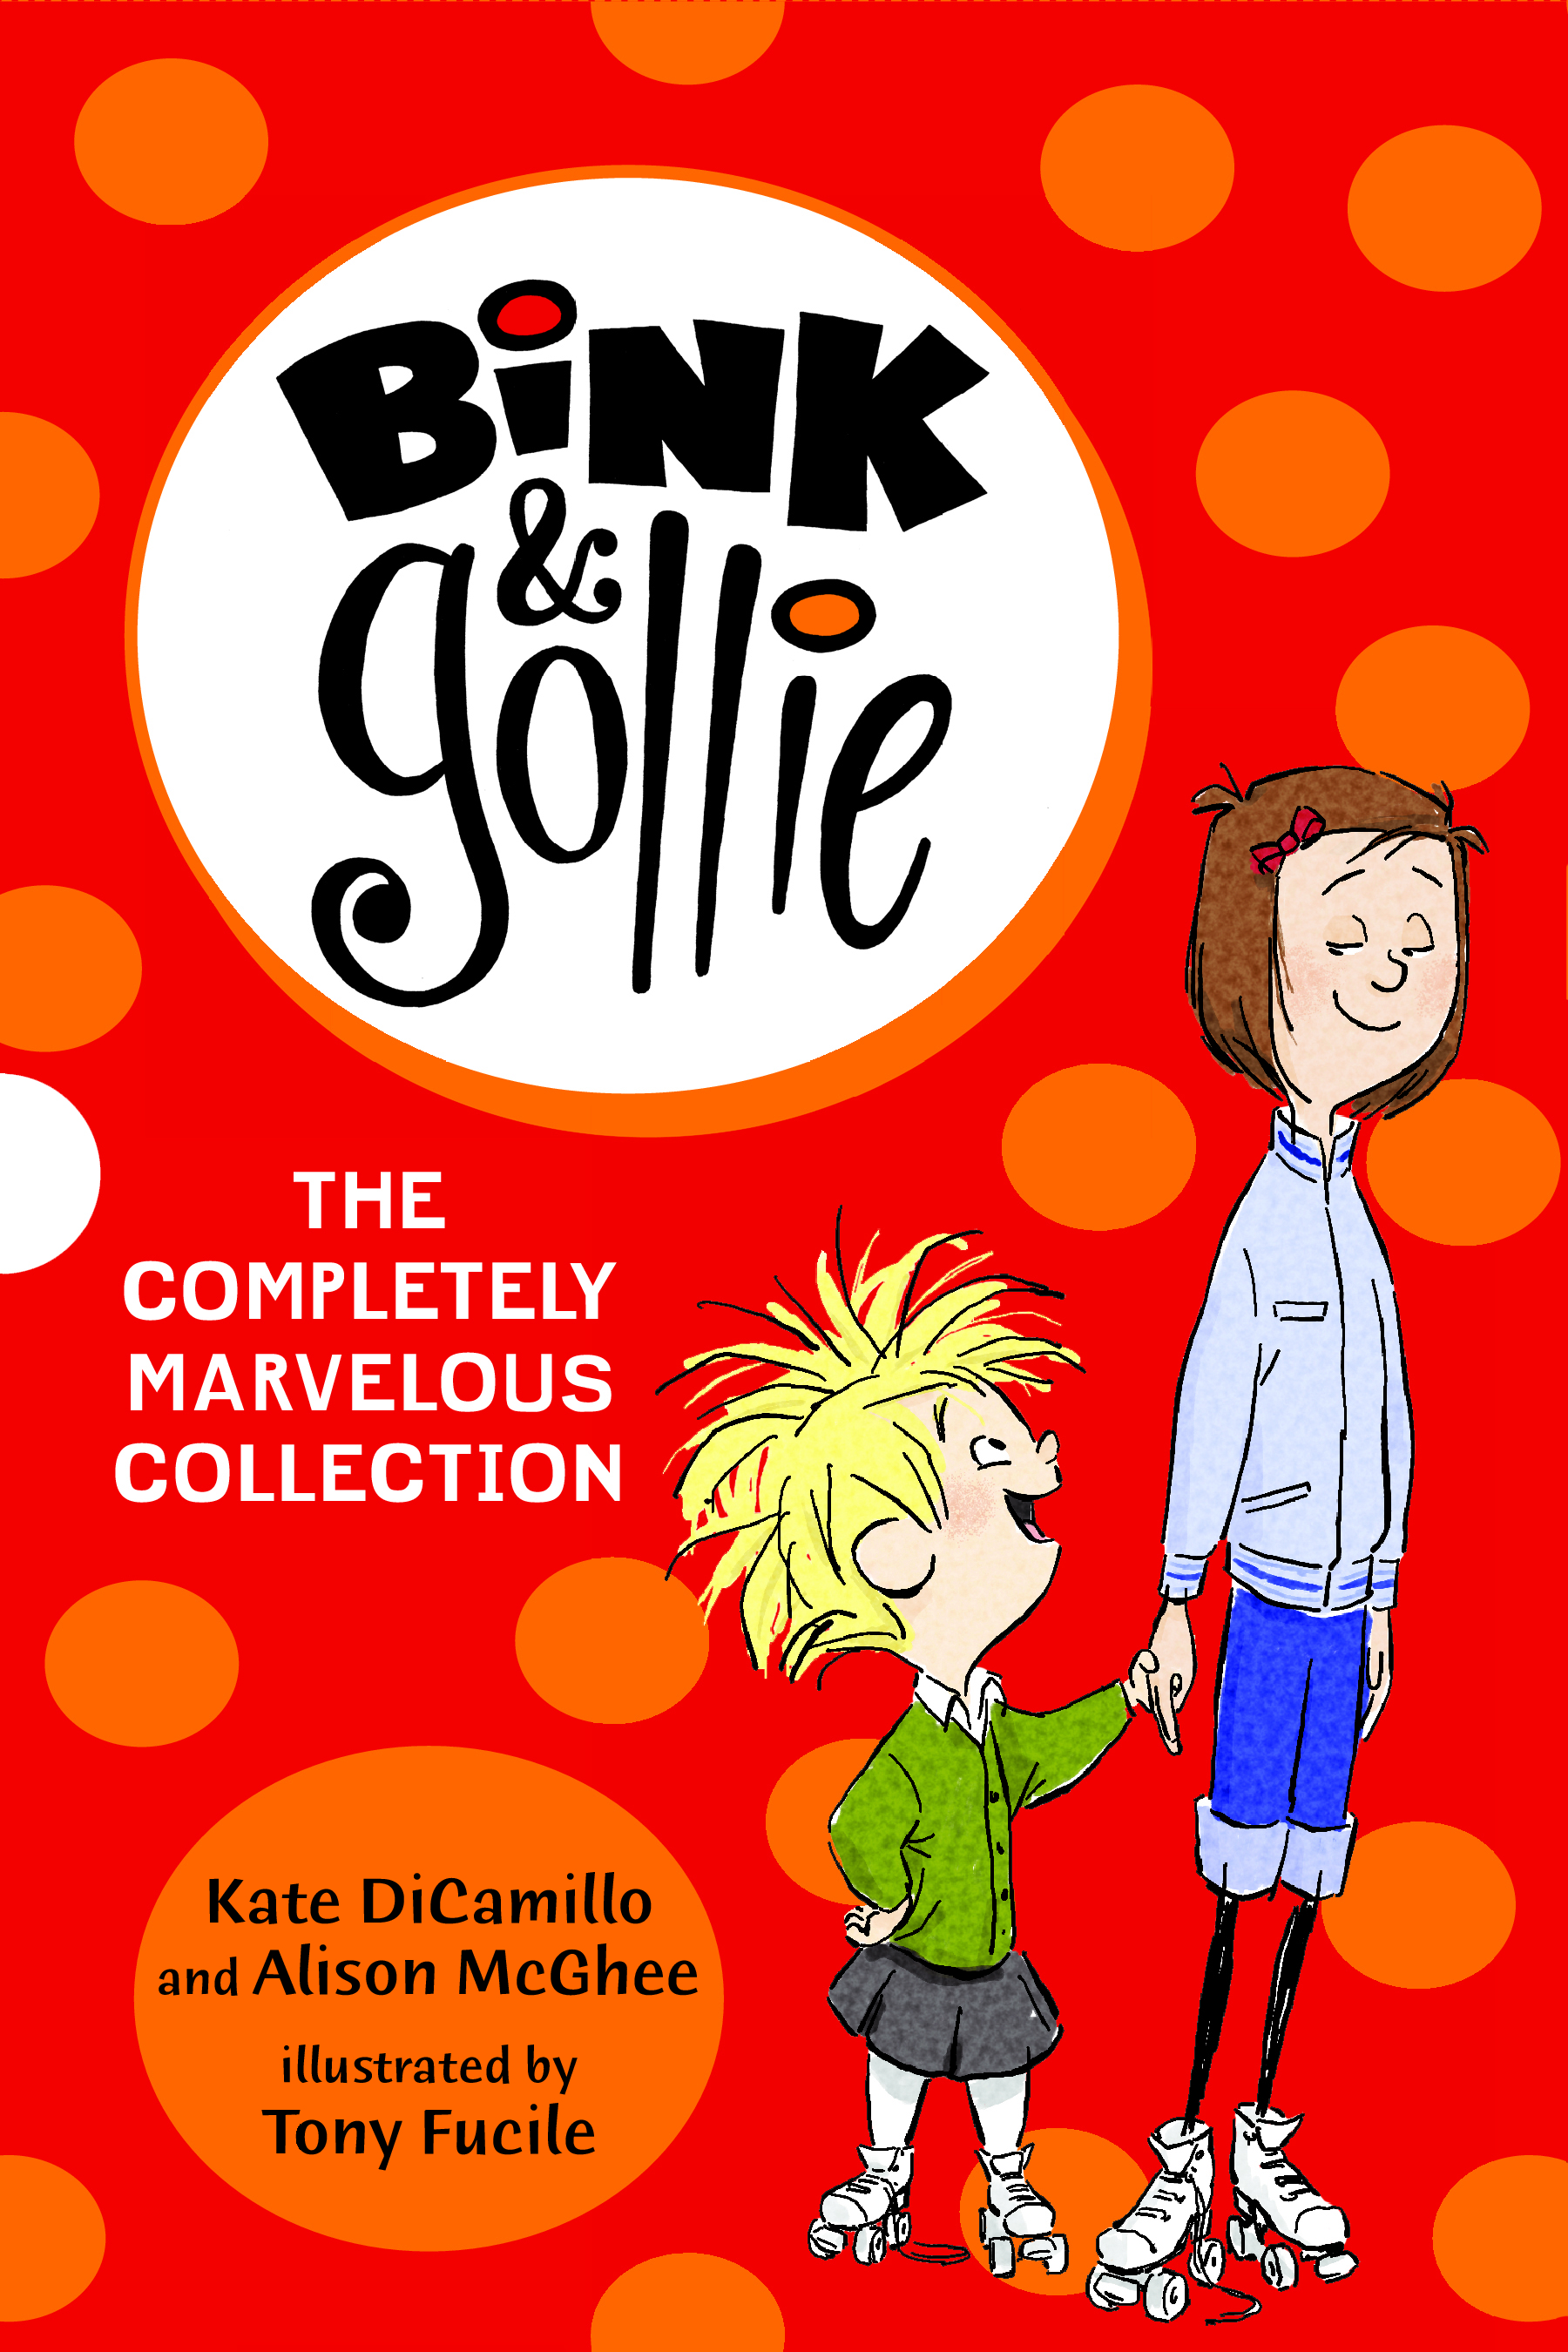 Slipcase front for BINK & GOLLIE: THE COMPLETELY MARVELOUS COLLECTION